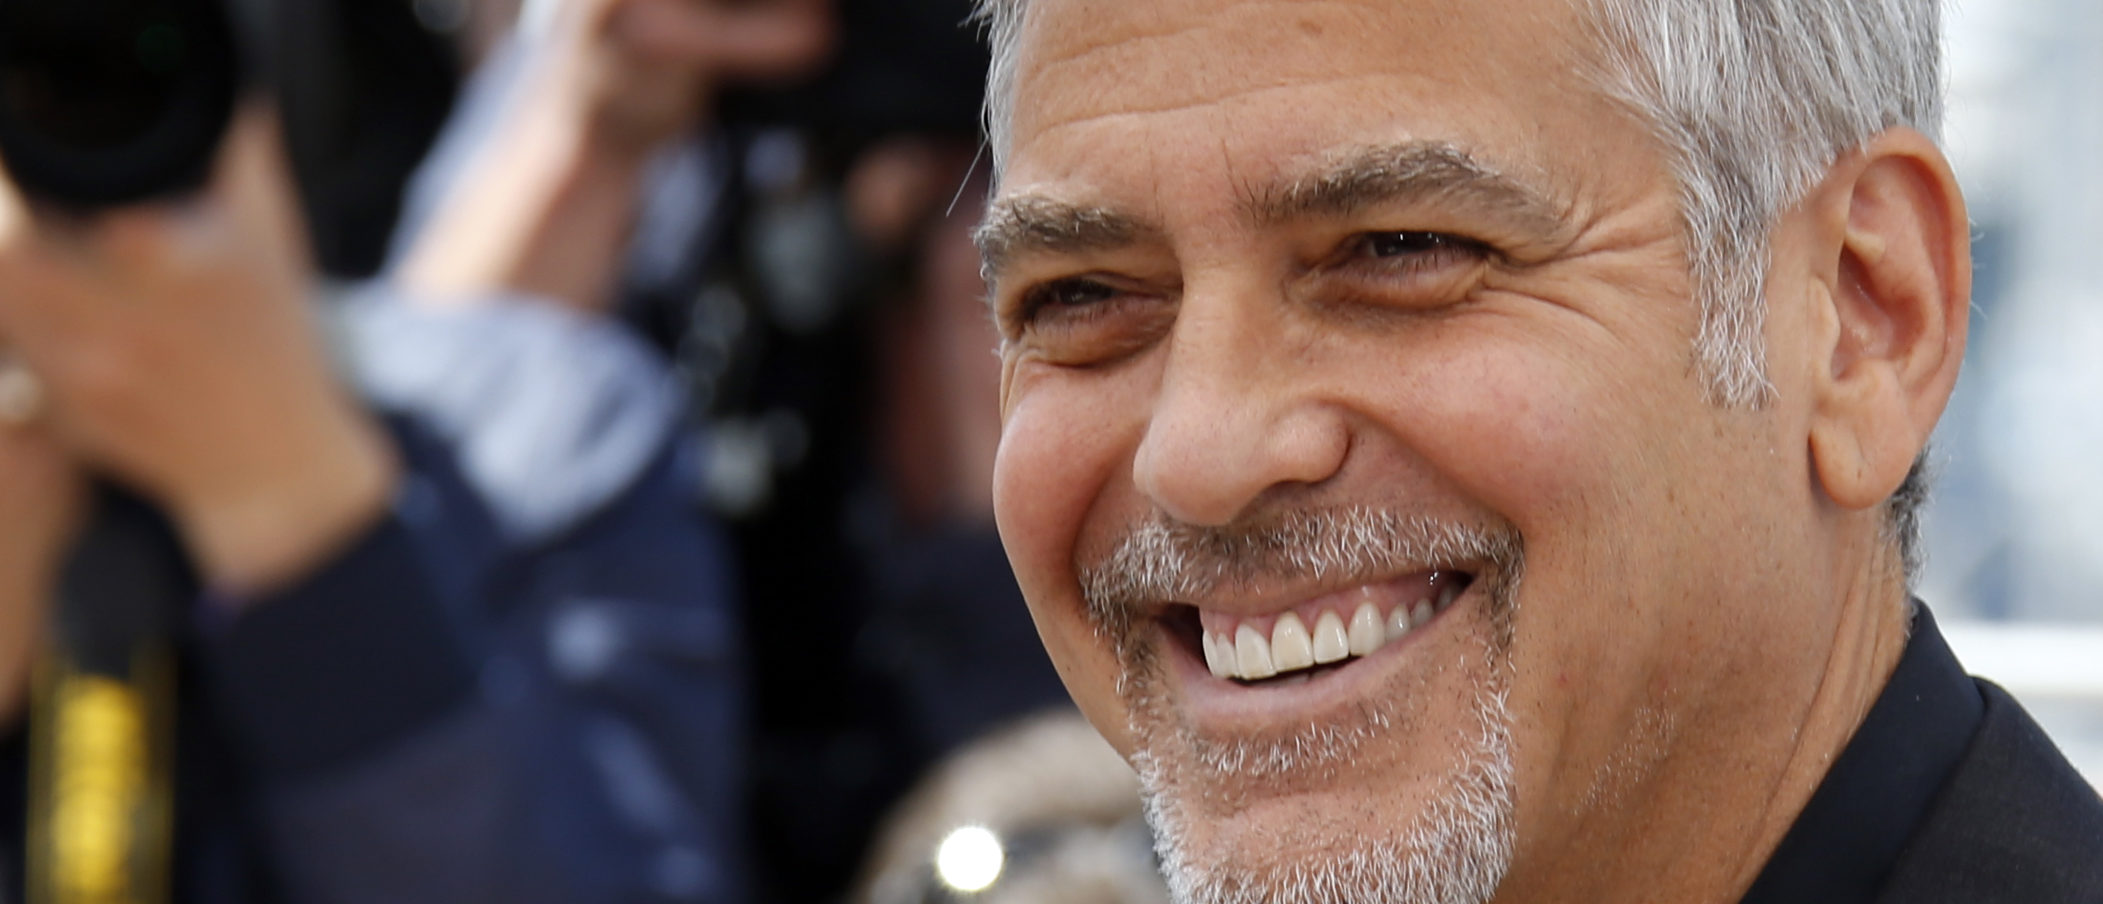 "Cast member George Clooney poses during a photocall for the film ""Money Monster"" out of competition at the 69th Cannes Film Festival in Cannes, France, May 12, 2016. REUTERS/Jean-Paul Pelissier - LR1EC5C10A8JE"